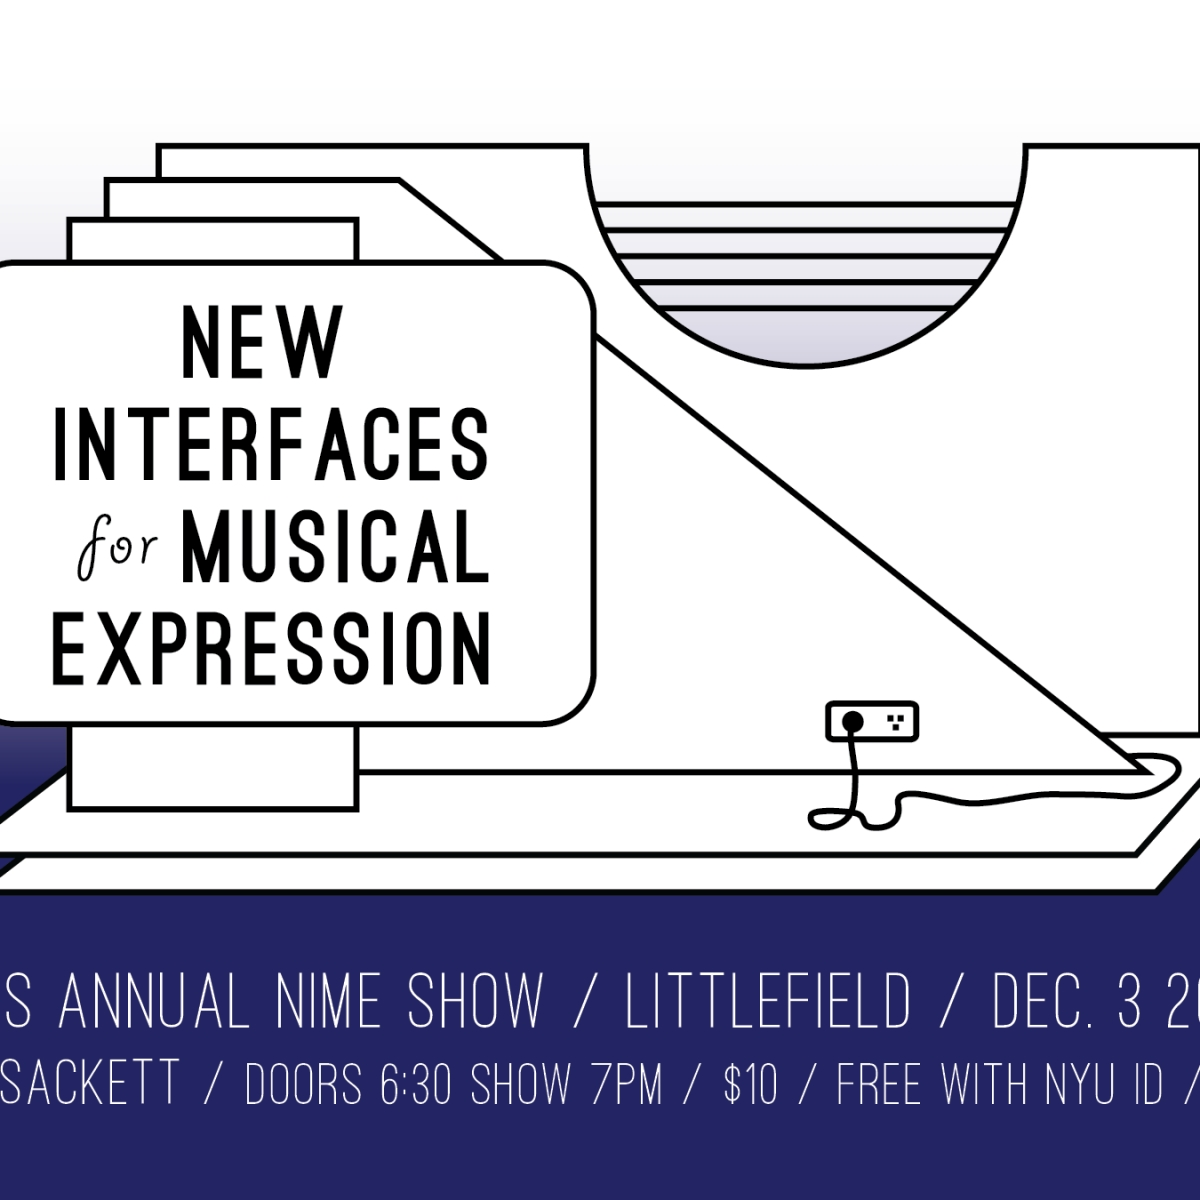 Show poster for New Interfaces for Musical Expression